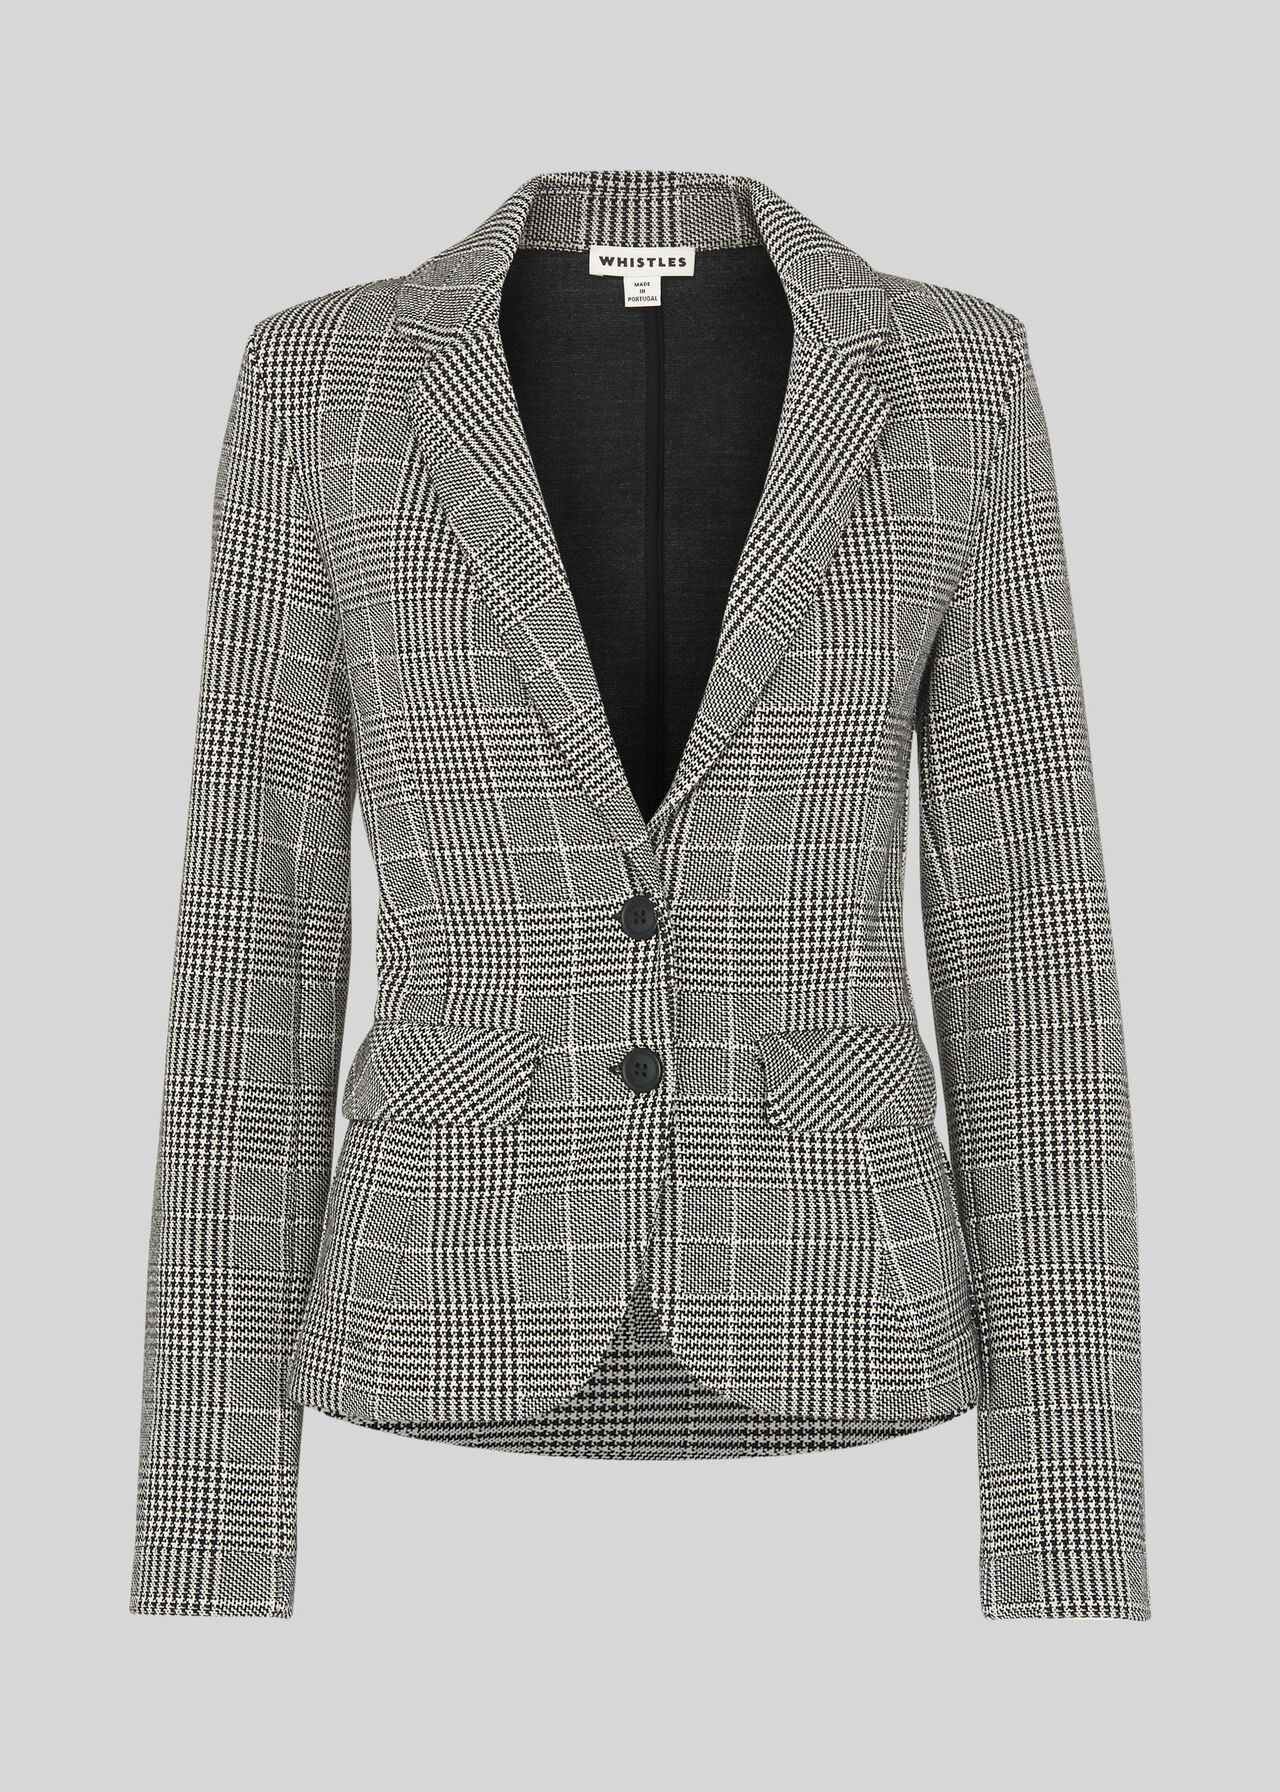 Check Slim Jersey Jacket Black and White